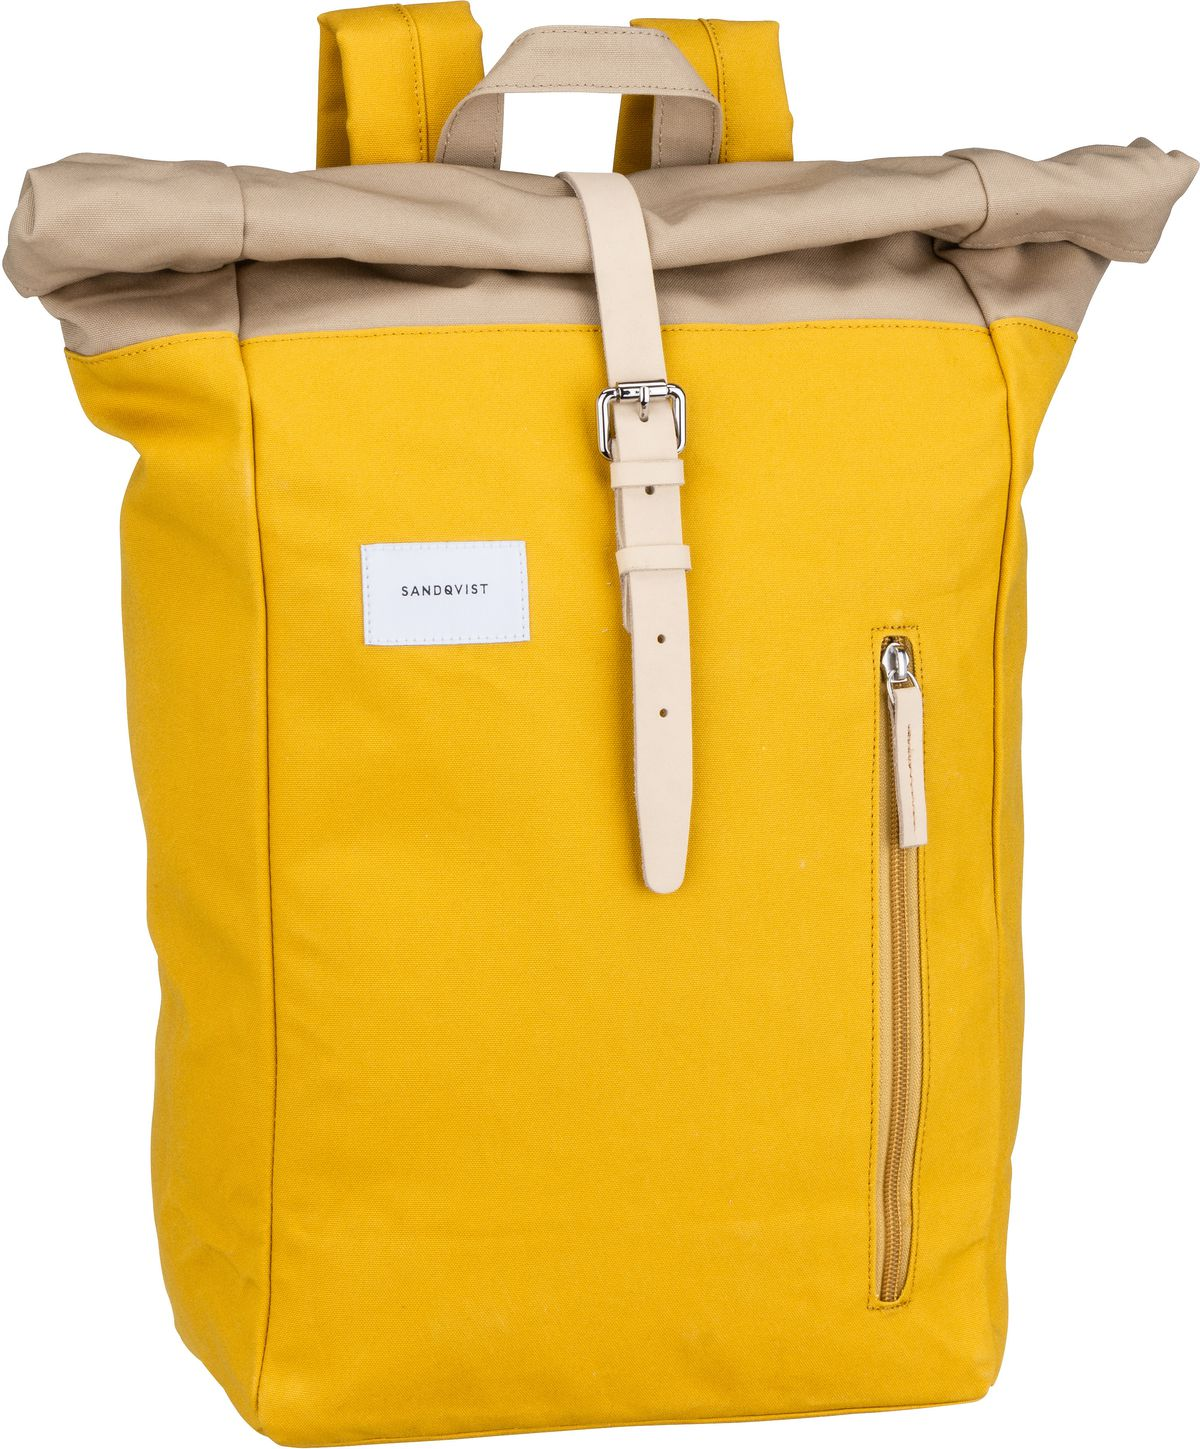 Laptoprucksack Dante Backpack Multi Yellow/Beige/Natural Leather (18 Liter)